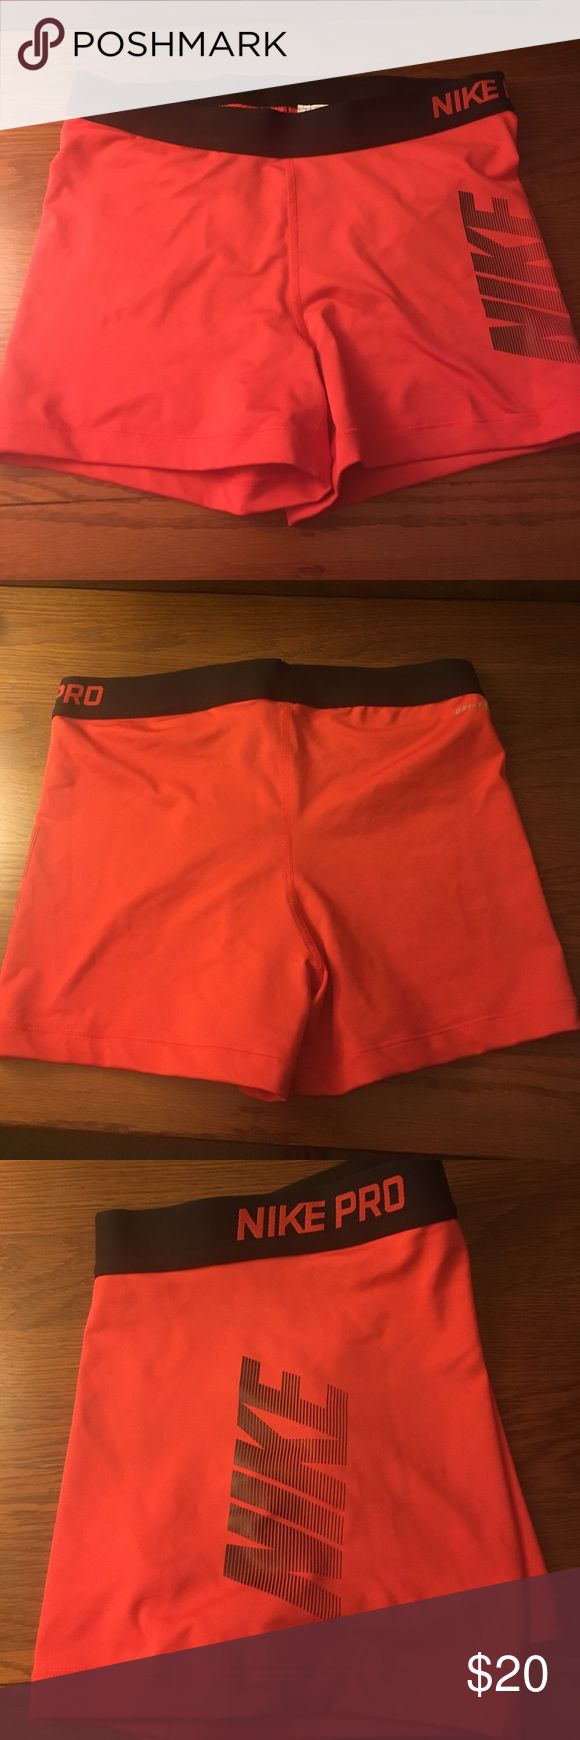 NWOT women's Nike compression shorts NWOT Nike women's compression shorts. I have tried these on, but never actually worn them Nike Shorts